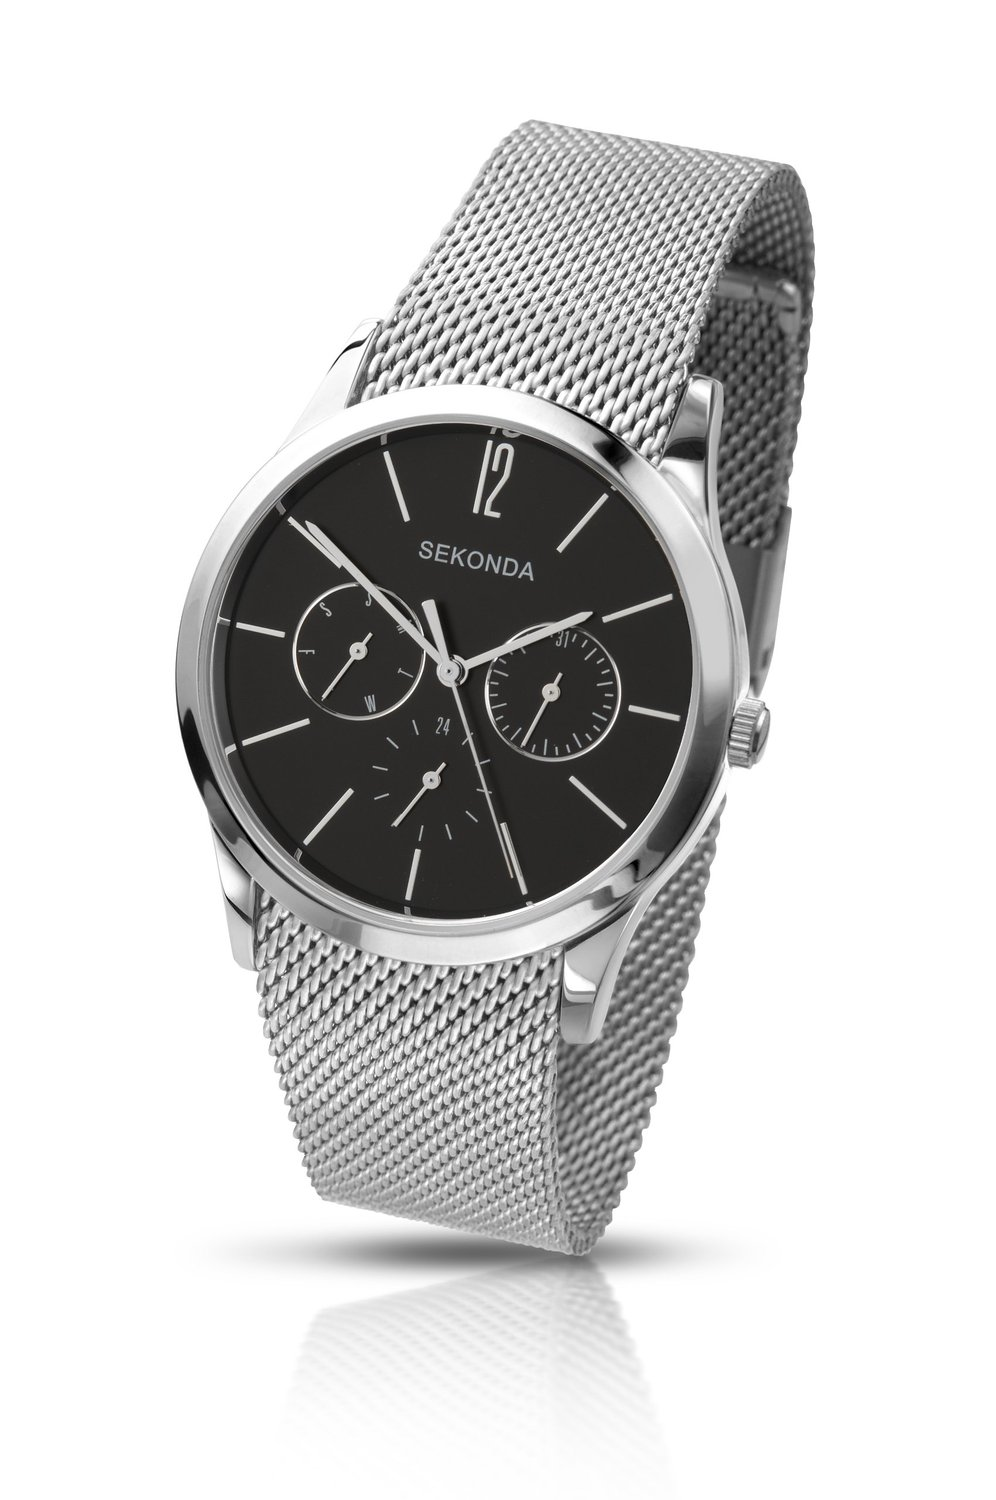 Sekonda Men's Quartz Watch with Black Dial Analogue Display and Silver Stainless Steel Bracelet 3440.27